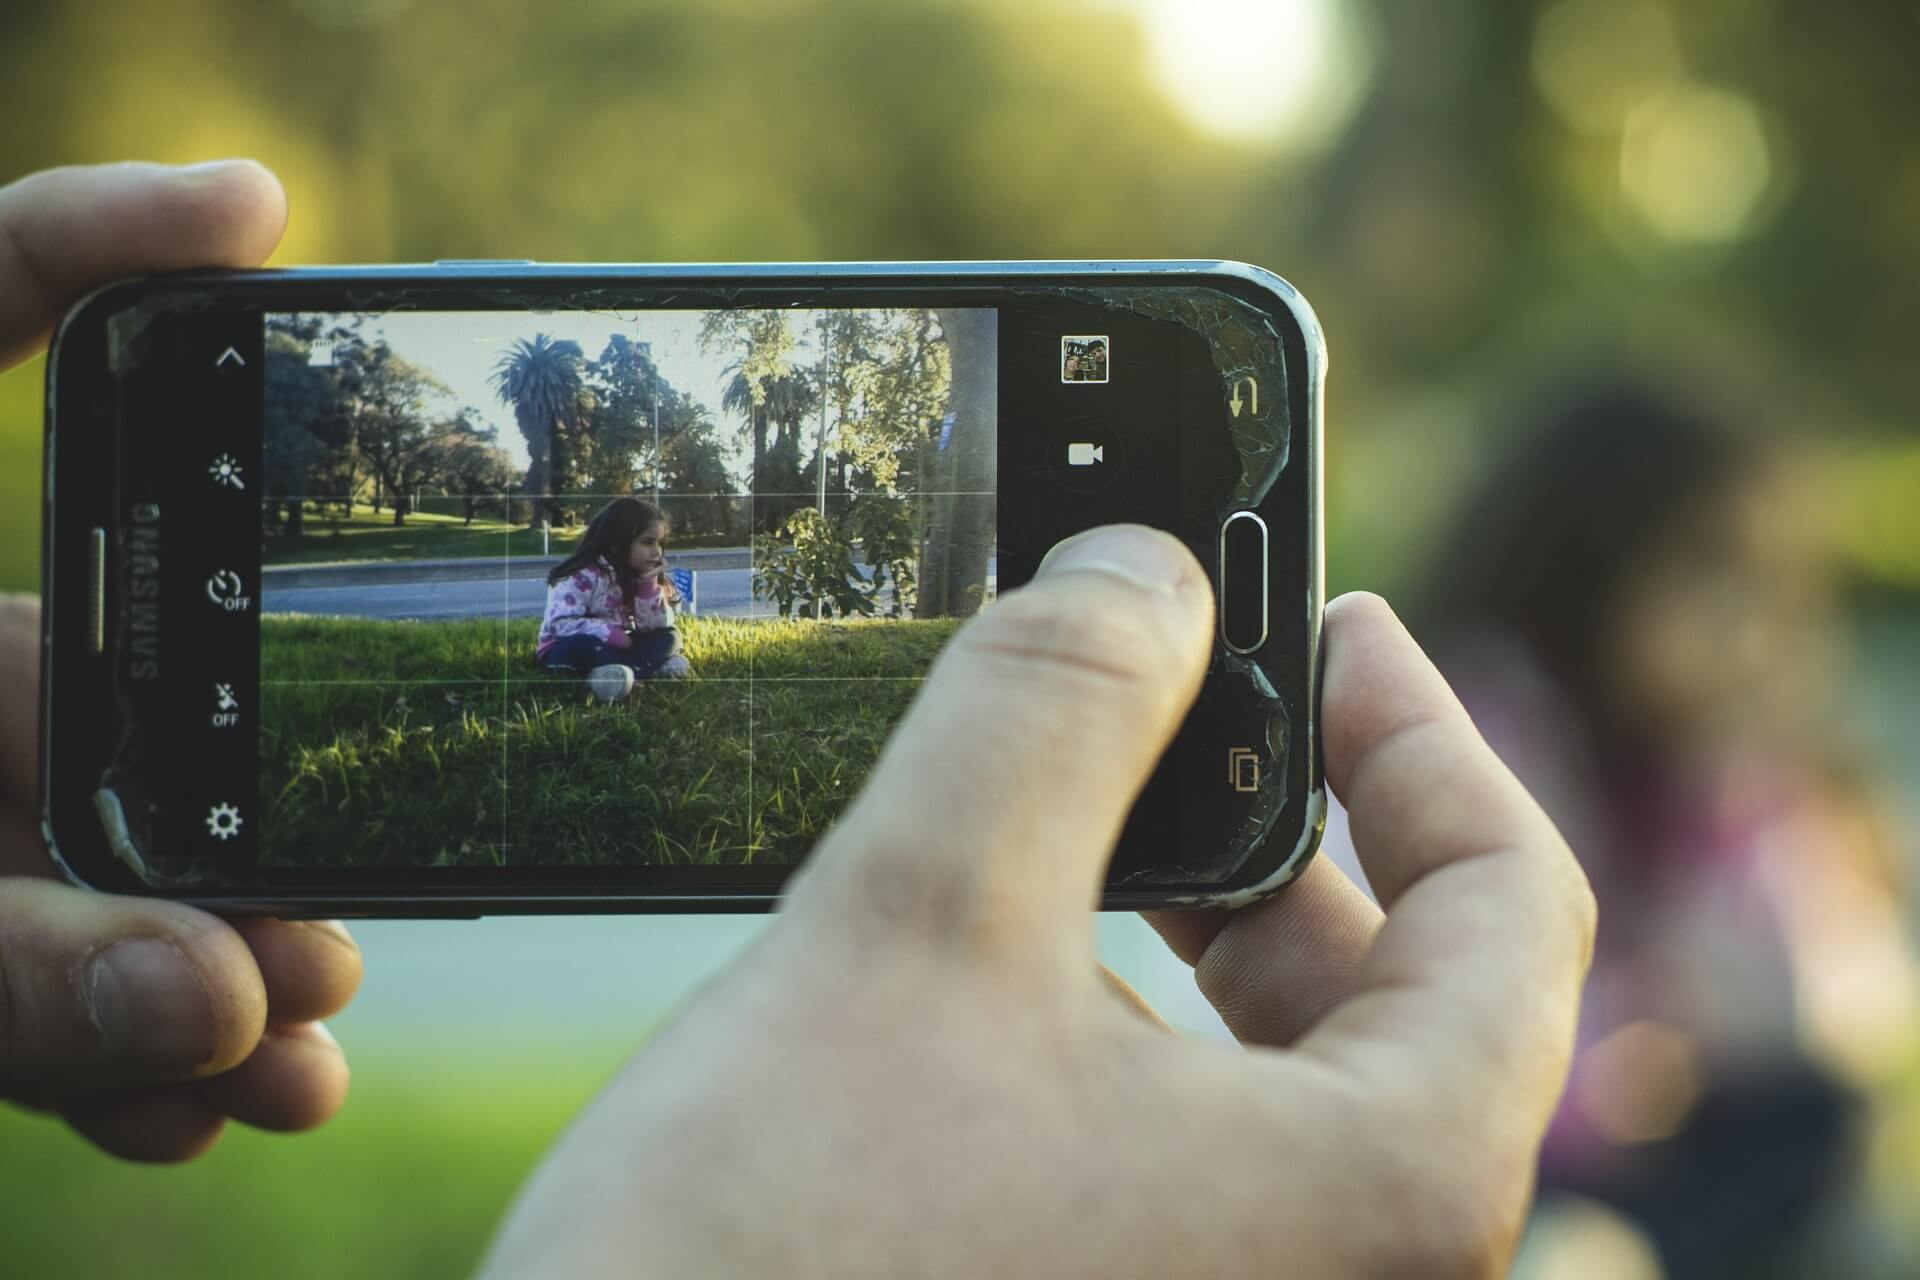 content/da-dk/images/repository/isc/2020/is-it-safe-to-post-photos-of-your-kids-online.jpg